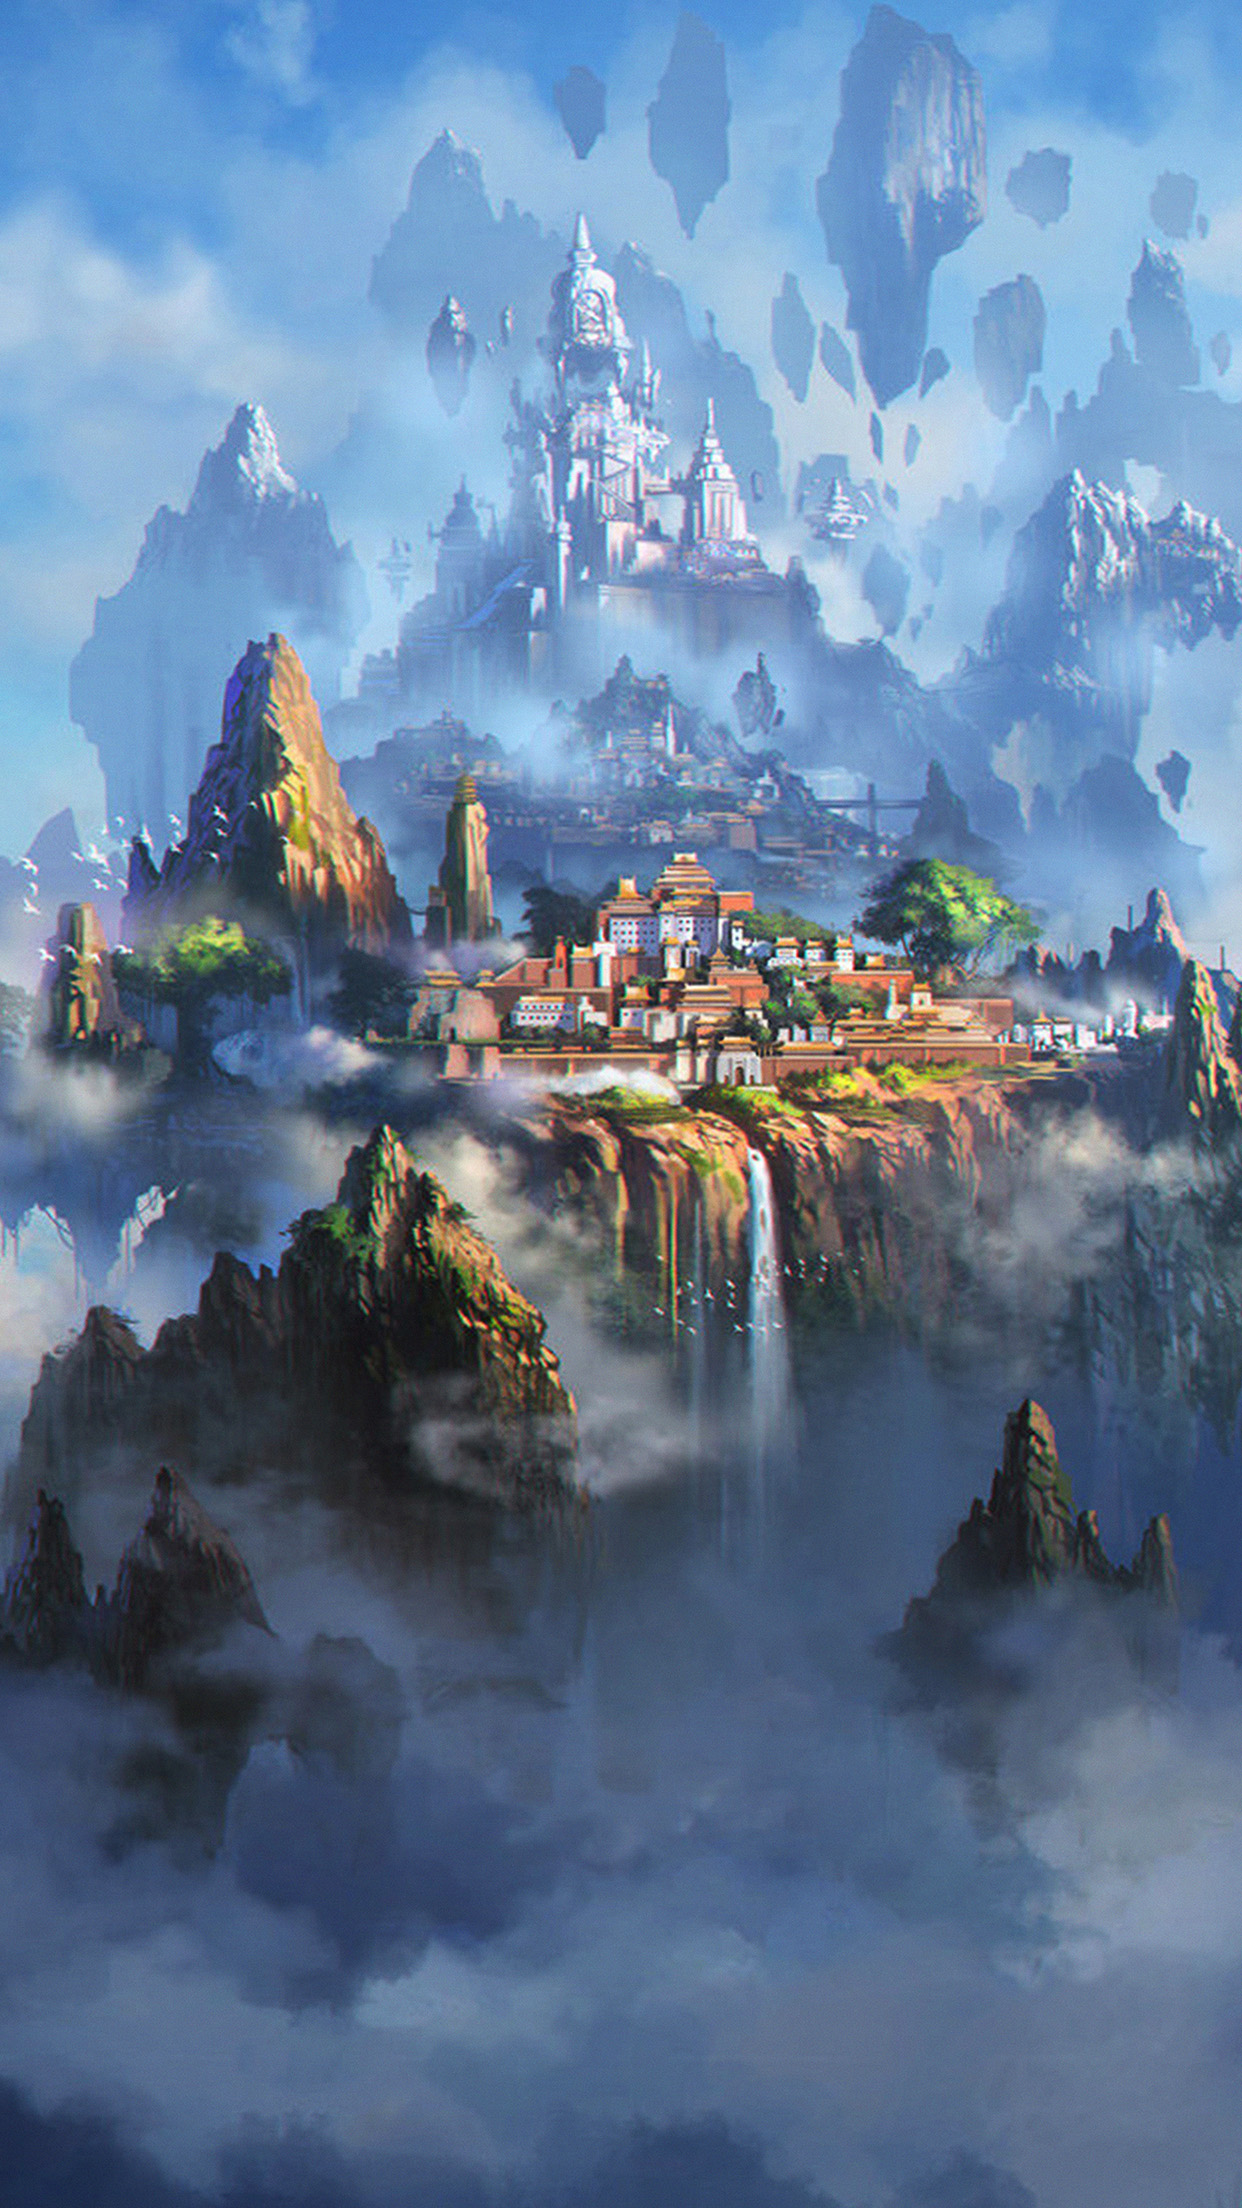 Cloud Town Fantasy Anime Liang Xing Illustration Art Android wallpaper